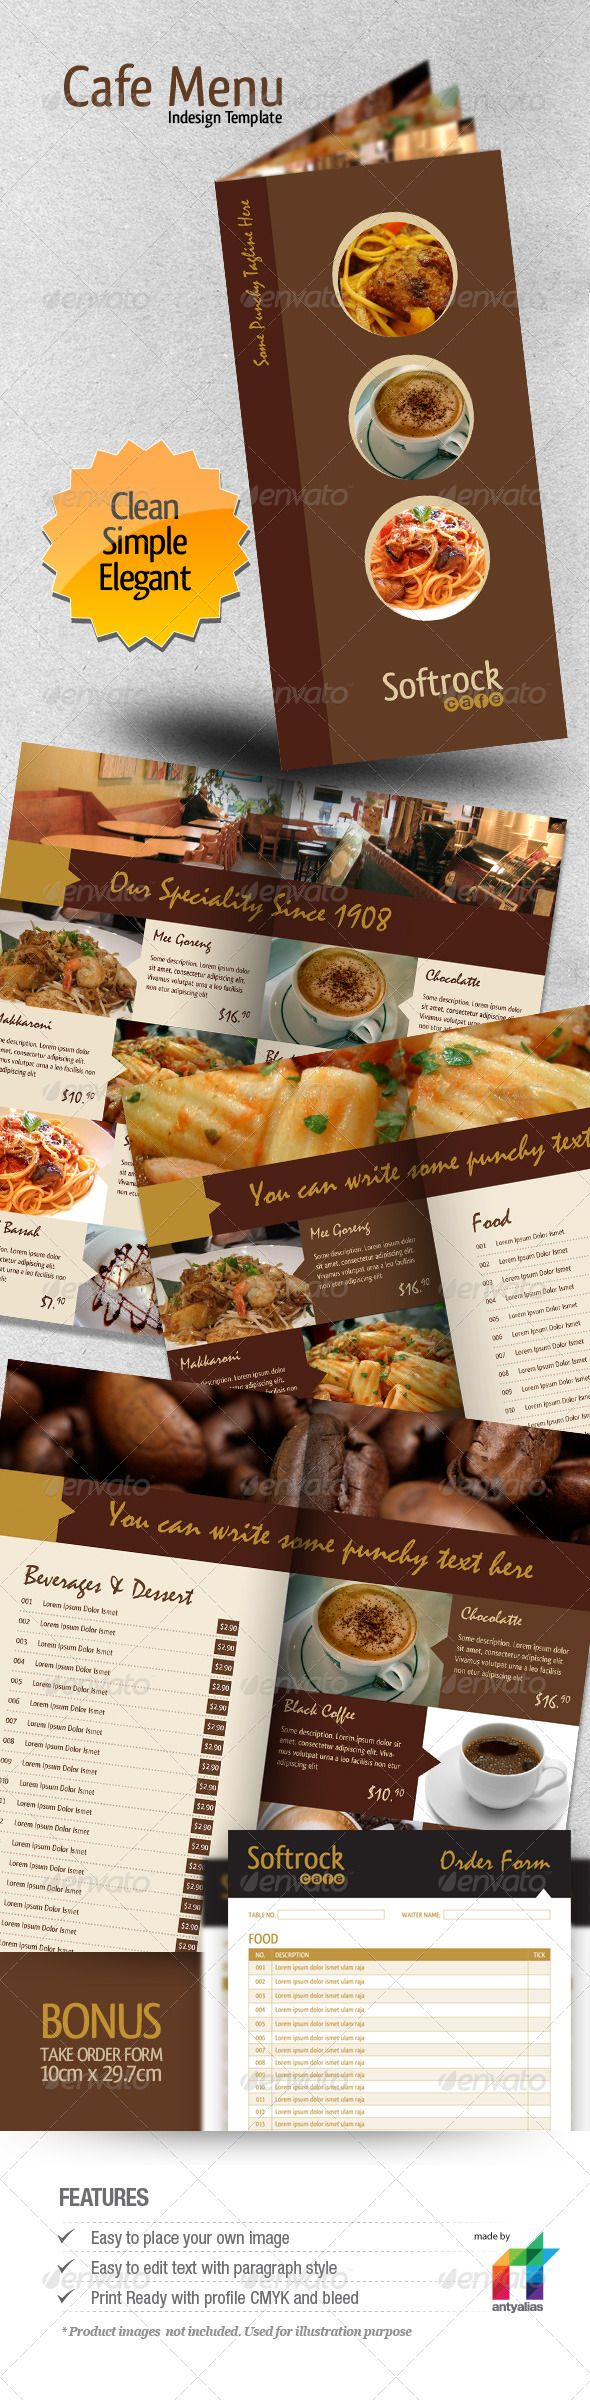 Cafe Menu Indesign Template  Indesign Templates Cafe Menu And Menu